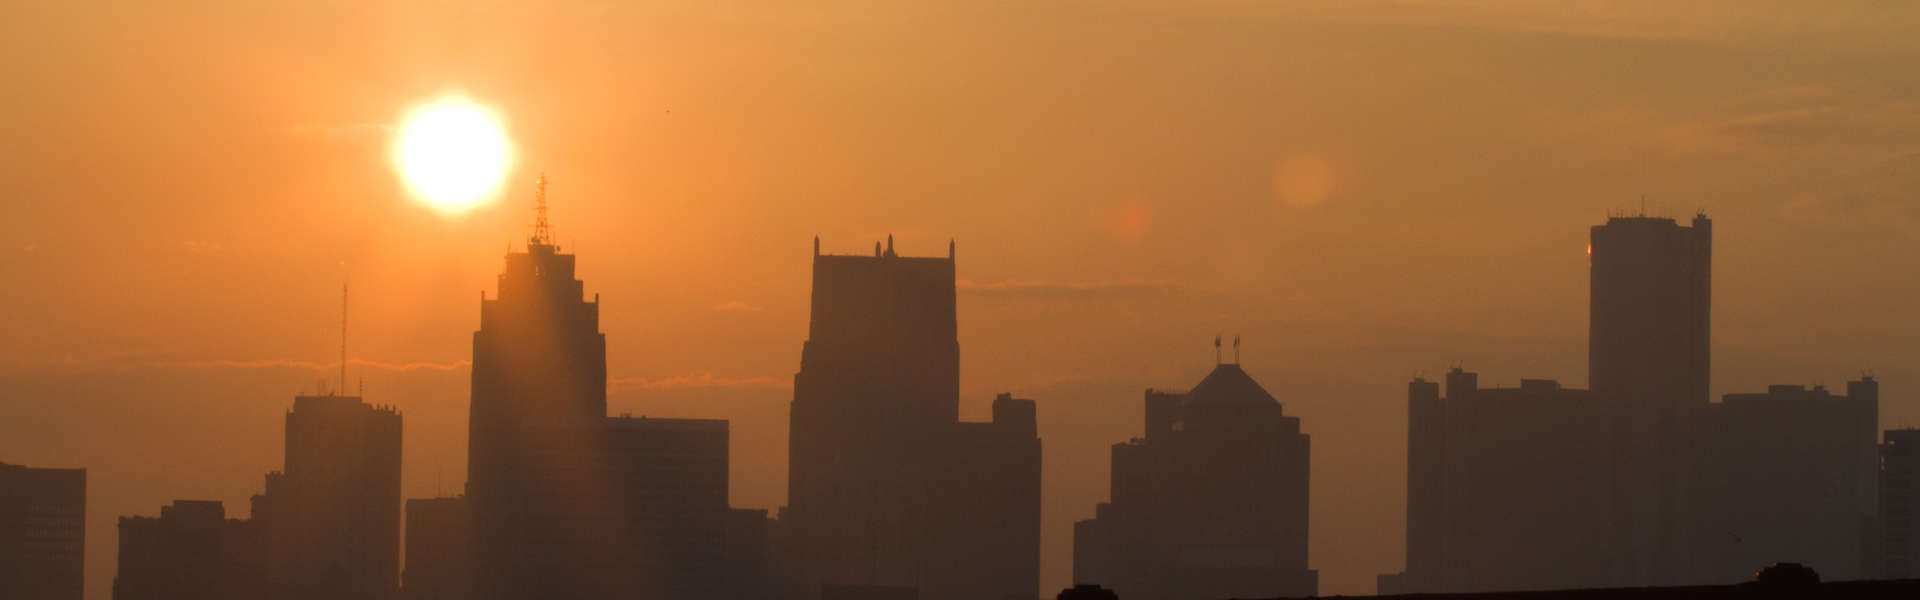 On NextBillion.net. A sunrise over Detroit. Photo credit: Jason Mrachina, https://www.flickr.com/photos/w4nd3rl0st/5351095158/in/photolist-99RLam-dqzWDN-8PPXJy-qy3Fvb-8y79z4-iGGqa-qJbDBV-b7UgSa-6b5EEg-pSEswh-2HtKH-dpc9n4-eZu9VK-dqzNhX-7eCHYK-dqzW15-dbr2ME-5yJter-9pm91T-54D58r-2Z6k6x-53QLTk-ajRaUm-qRh74f-ajRbju-ajRb8E-8r5WTp-5yfG4U-5f3Kiu-5ktyZY-5f3Kj1-7hgNMv-beNGXH-dbr3tL-dqzXes-hskvM6-CZ5u-5gznYg-dbr2mB-dqzWrs-dbr1Qv-dqDthn-dbr3Ey-dbr3U9-85dxfC-qUqq4q-dpJq9c-dDRuWc-dqzWYC-7HPbPR